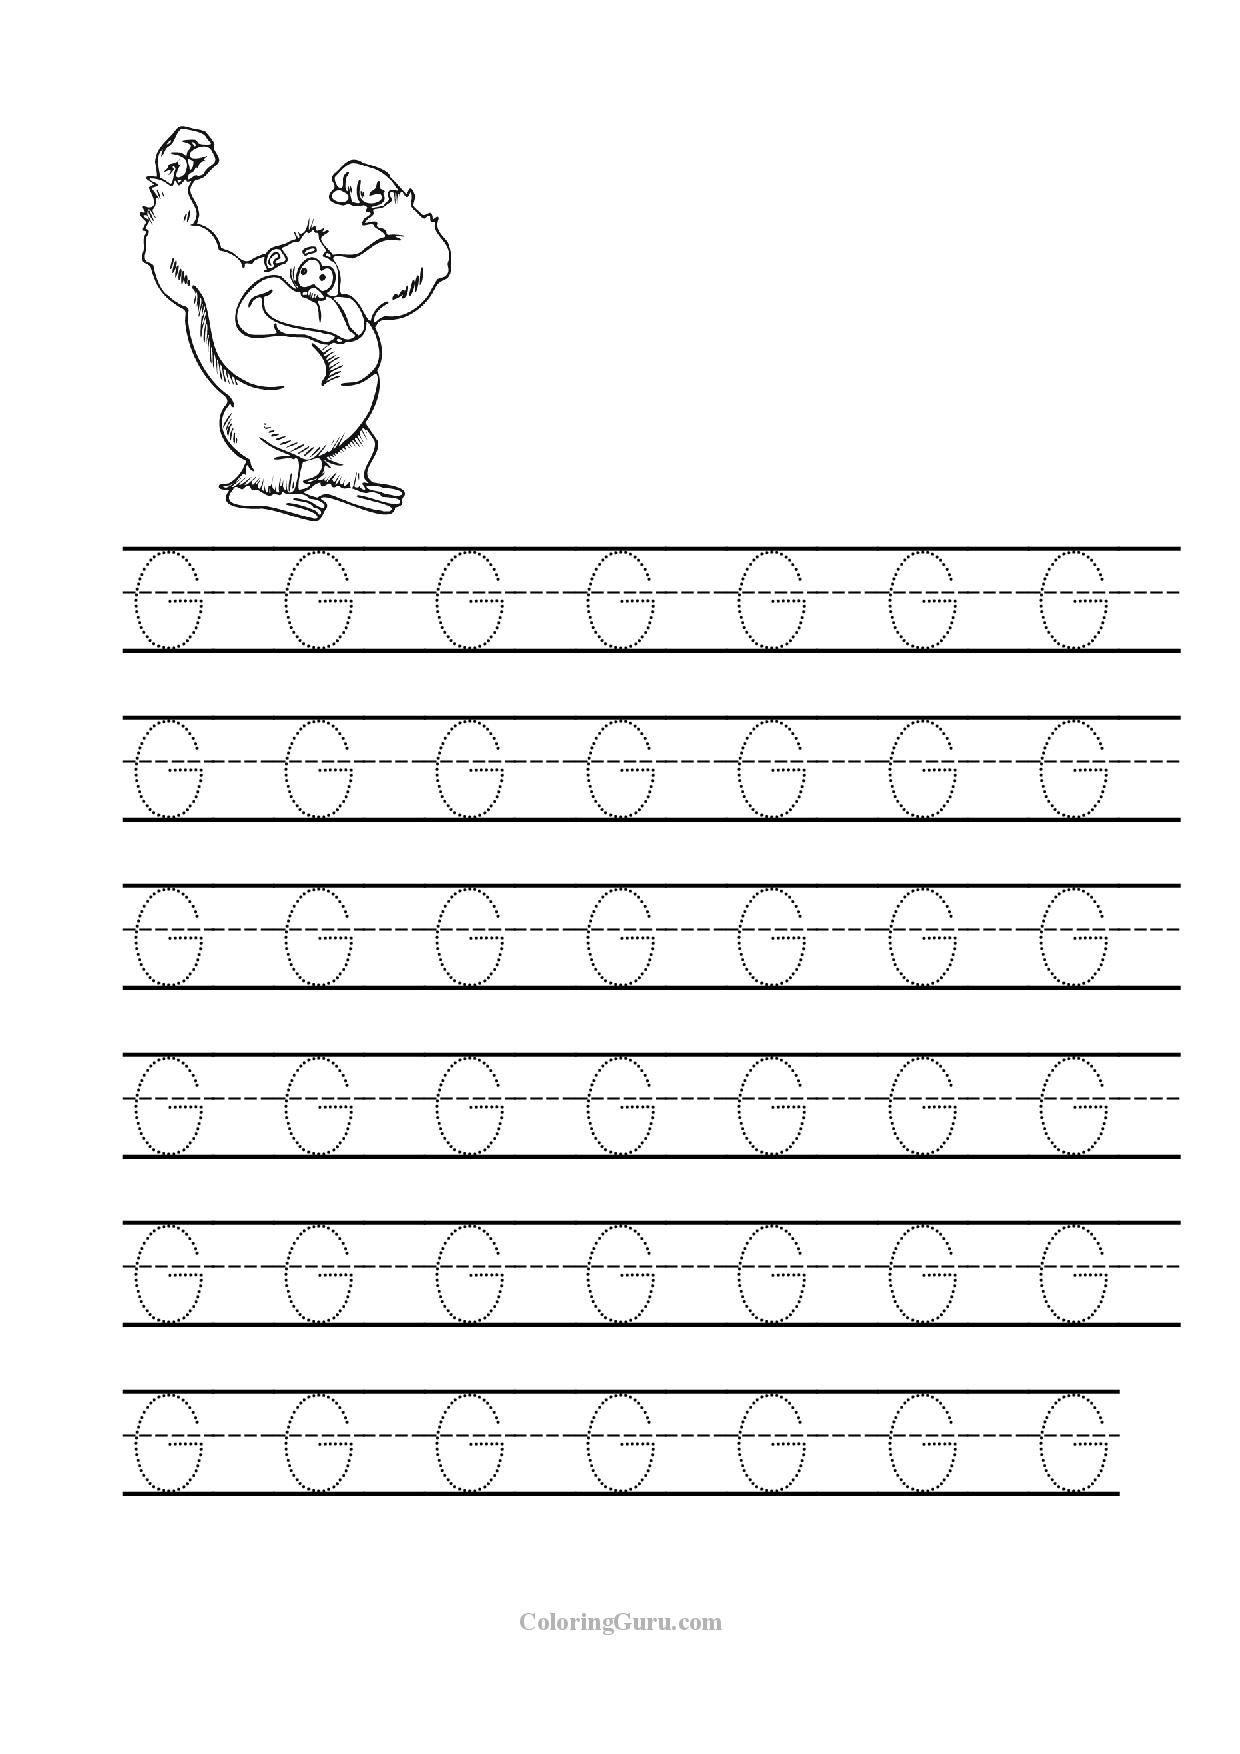 Letter G Tracing Worksheets Preschool Free Printable Tracing Letter G Worksheets for Preschool